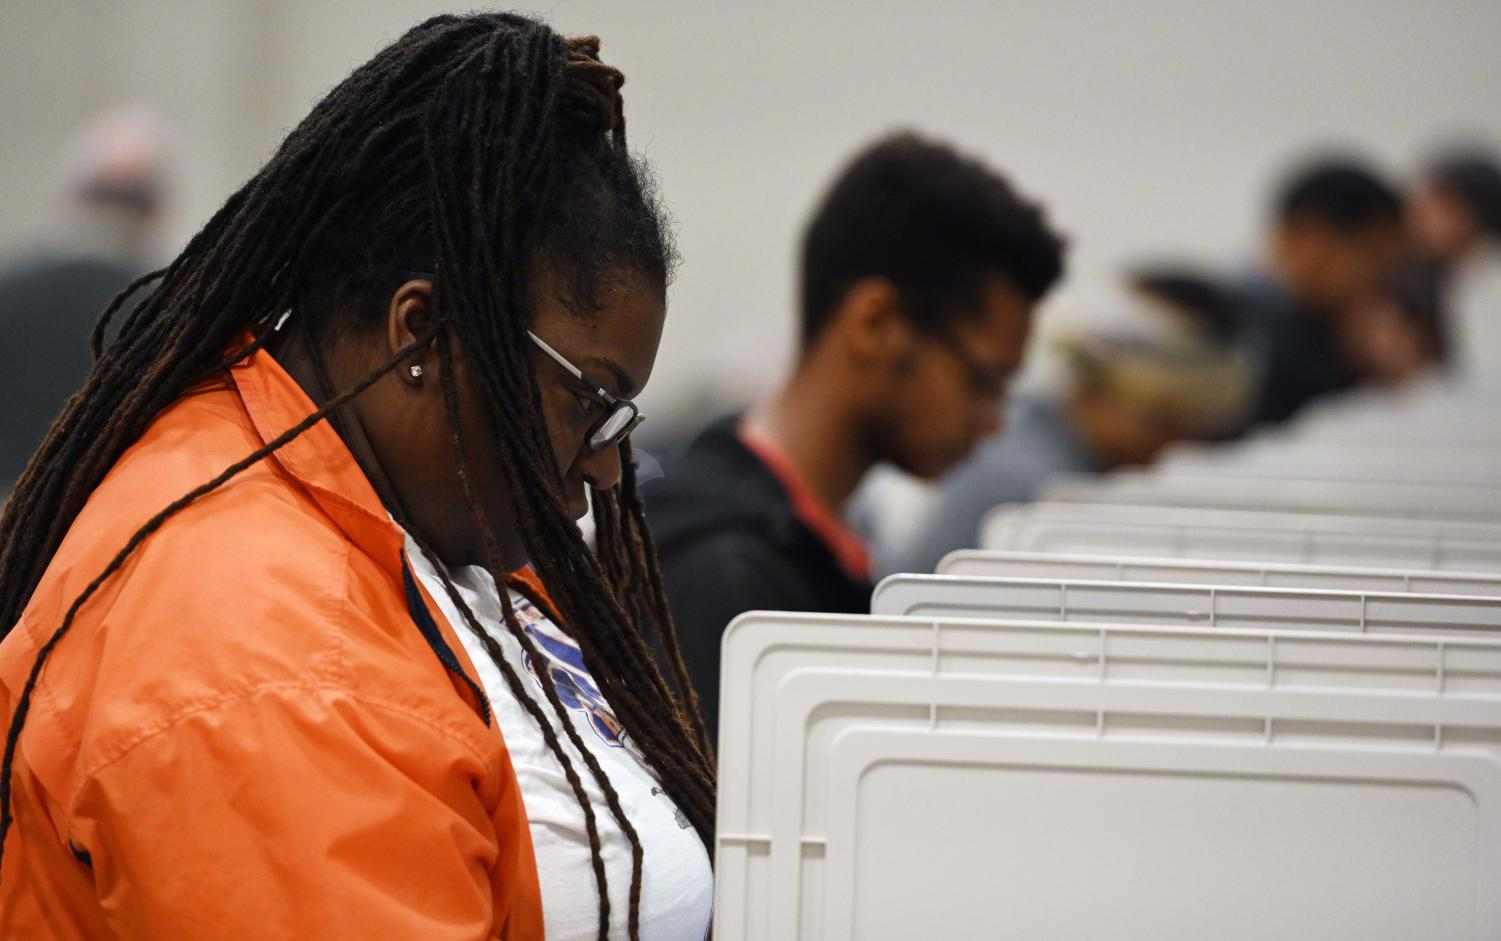 People cast their ballots ahead of the Nov. 6, general election at Jim Miller Park, in Marietta, Ga.